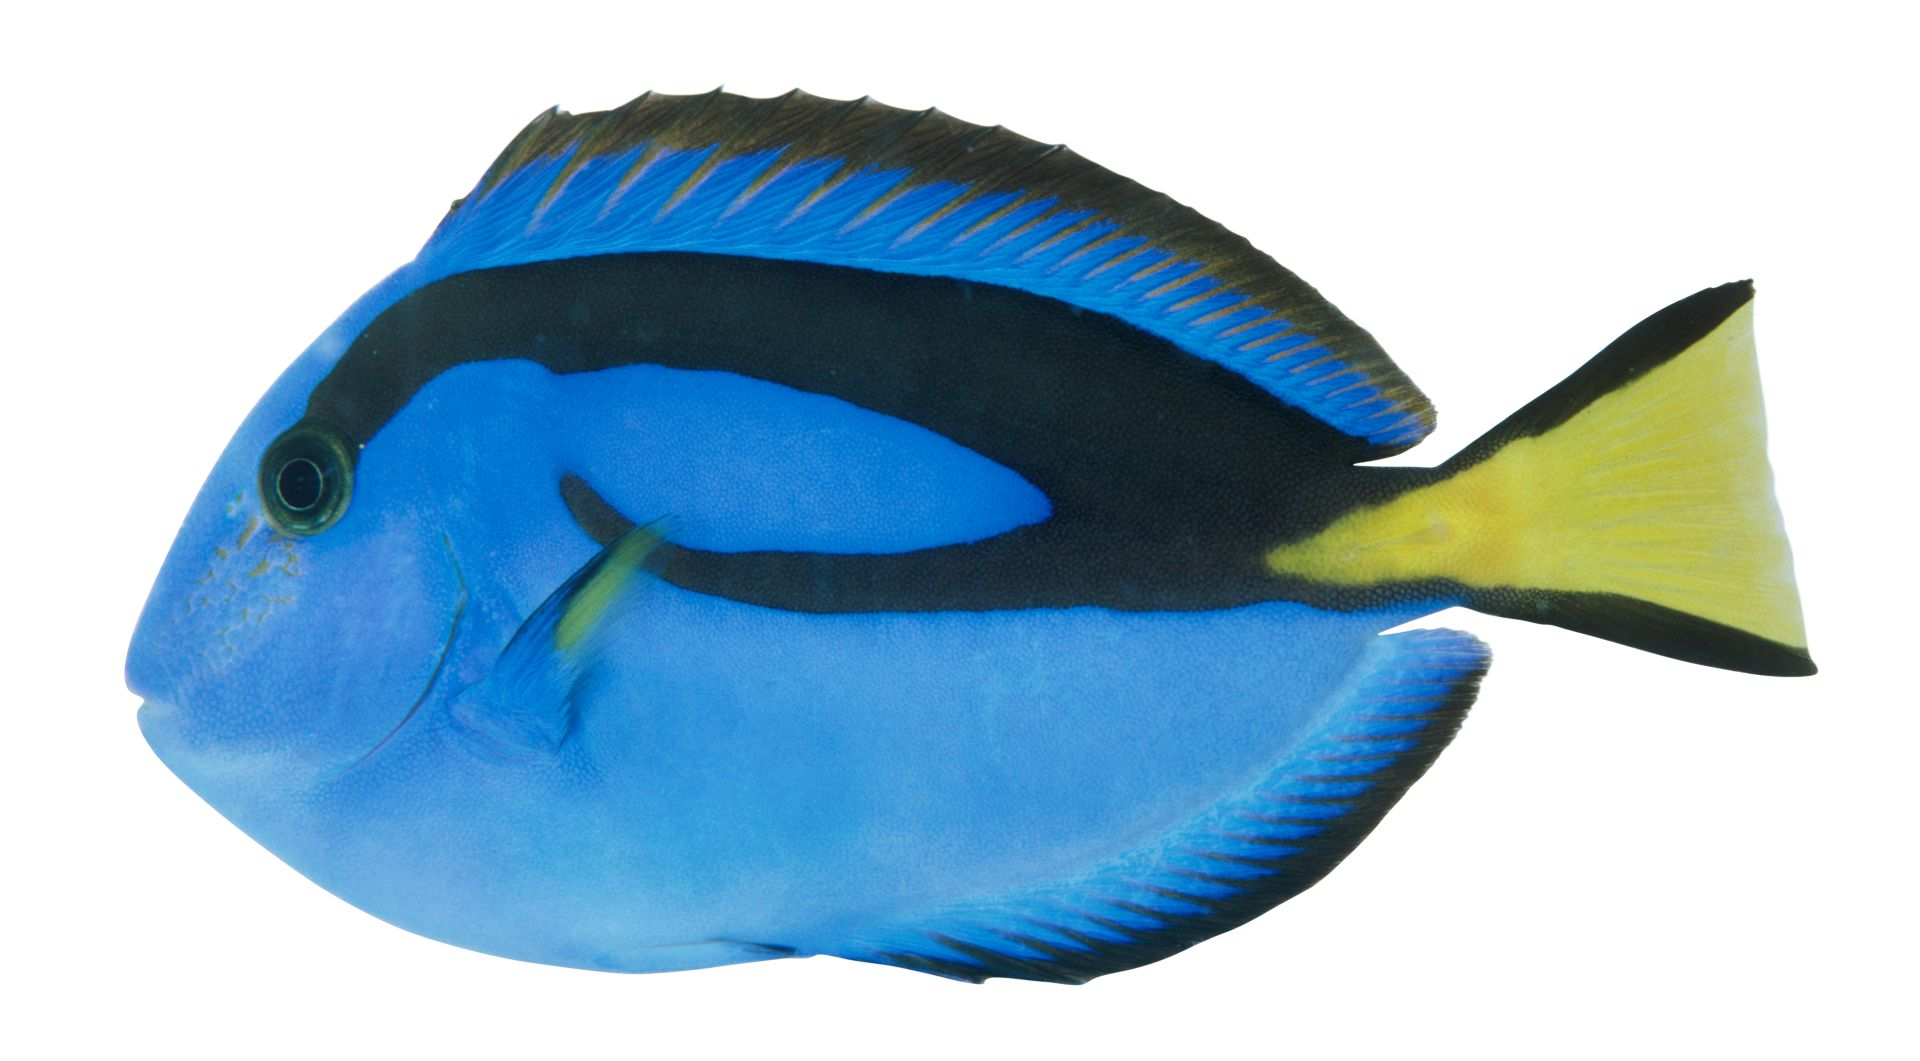 Pacific regal blue tang blue tang fish facts dk find out for Blue tang fish facts